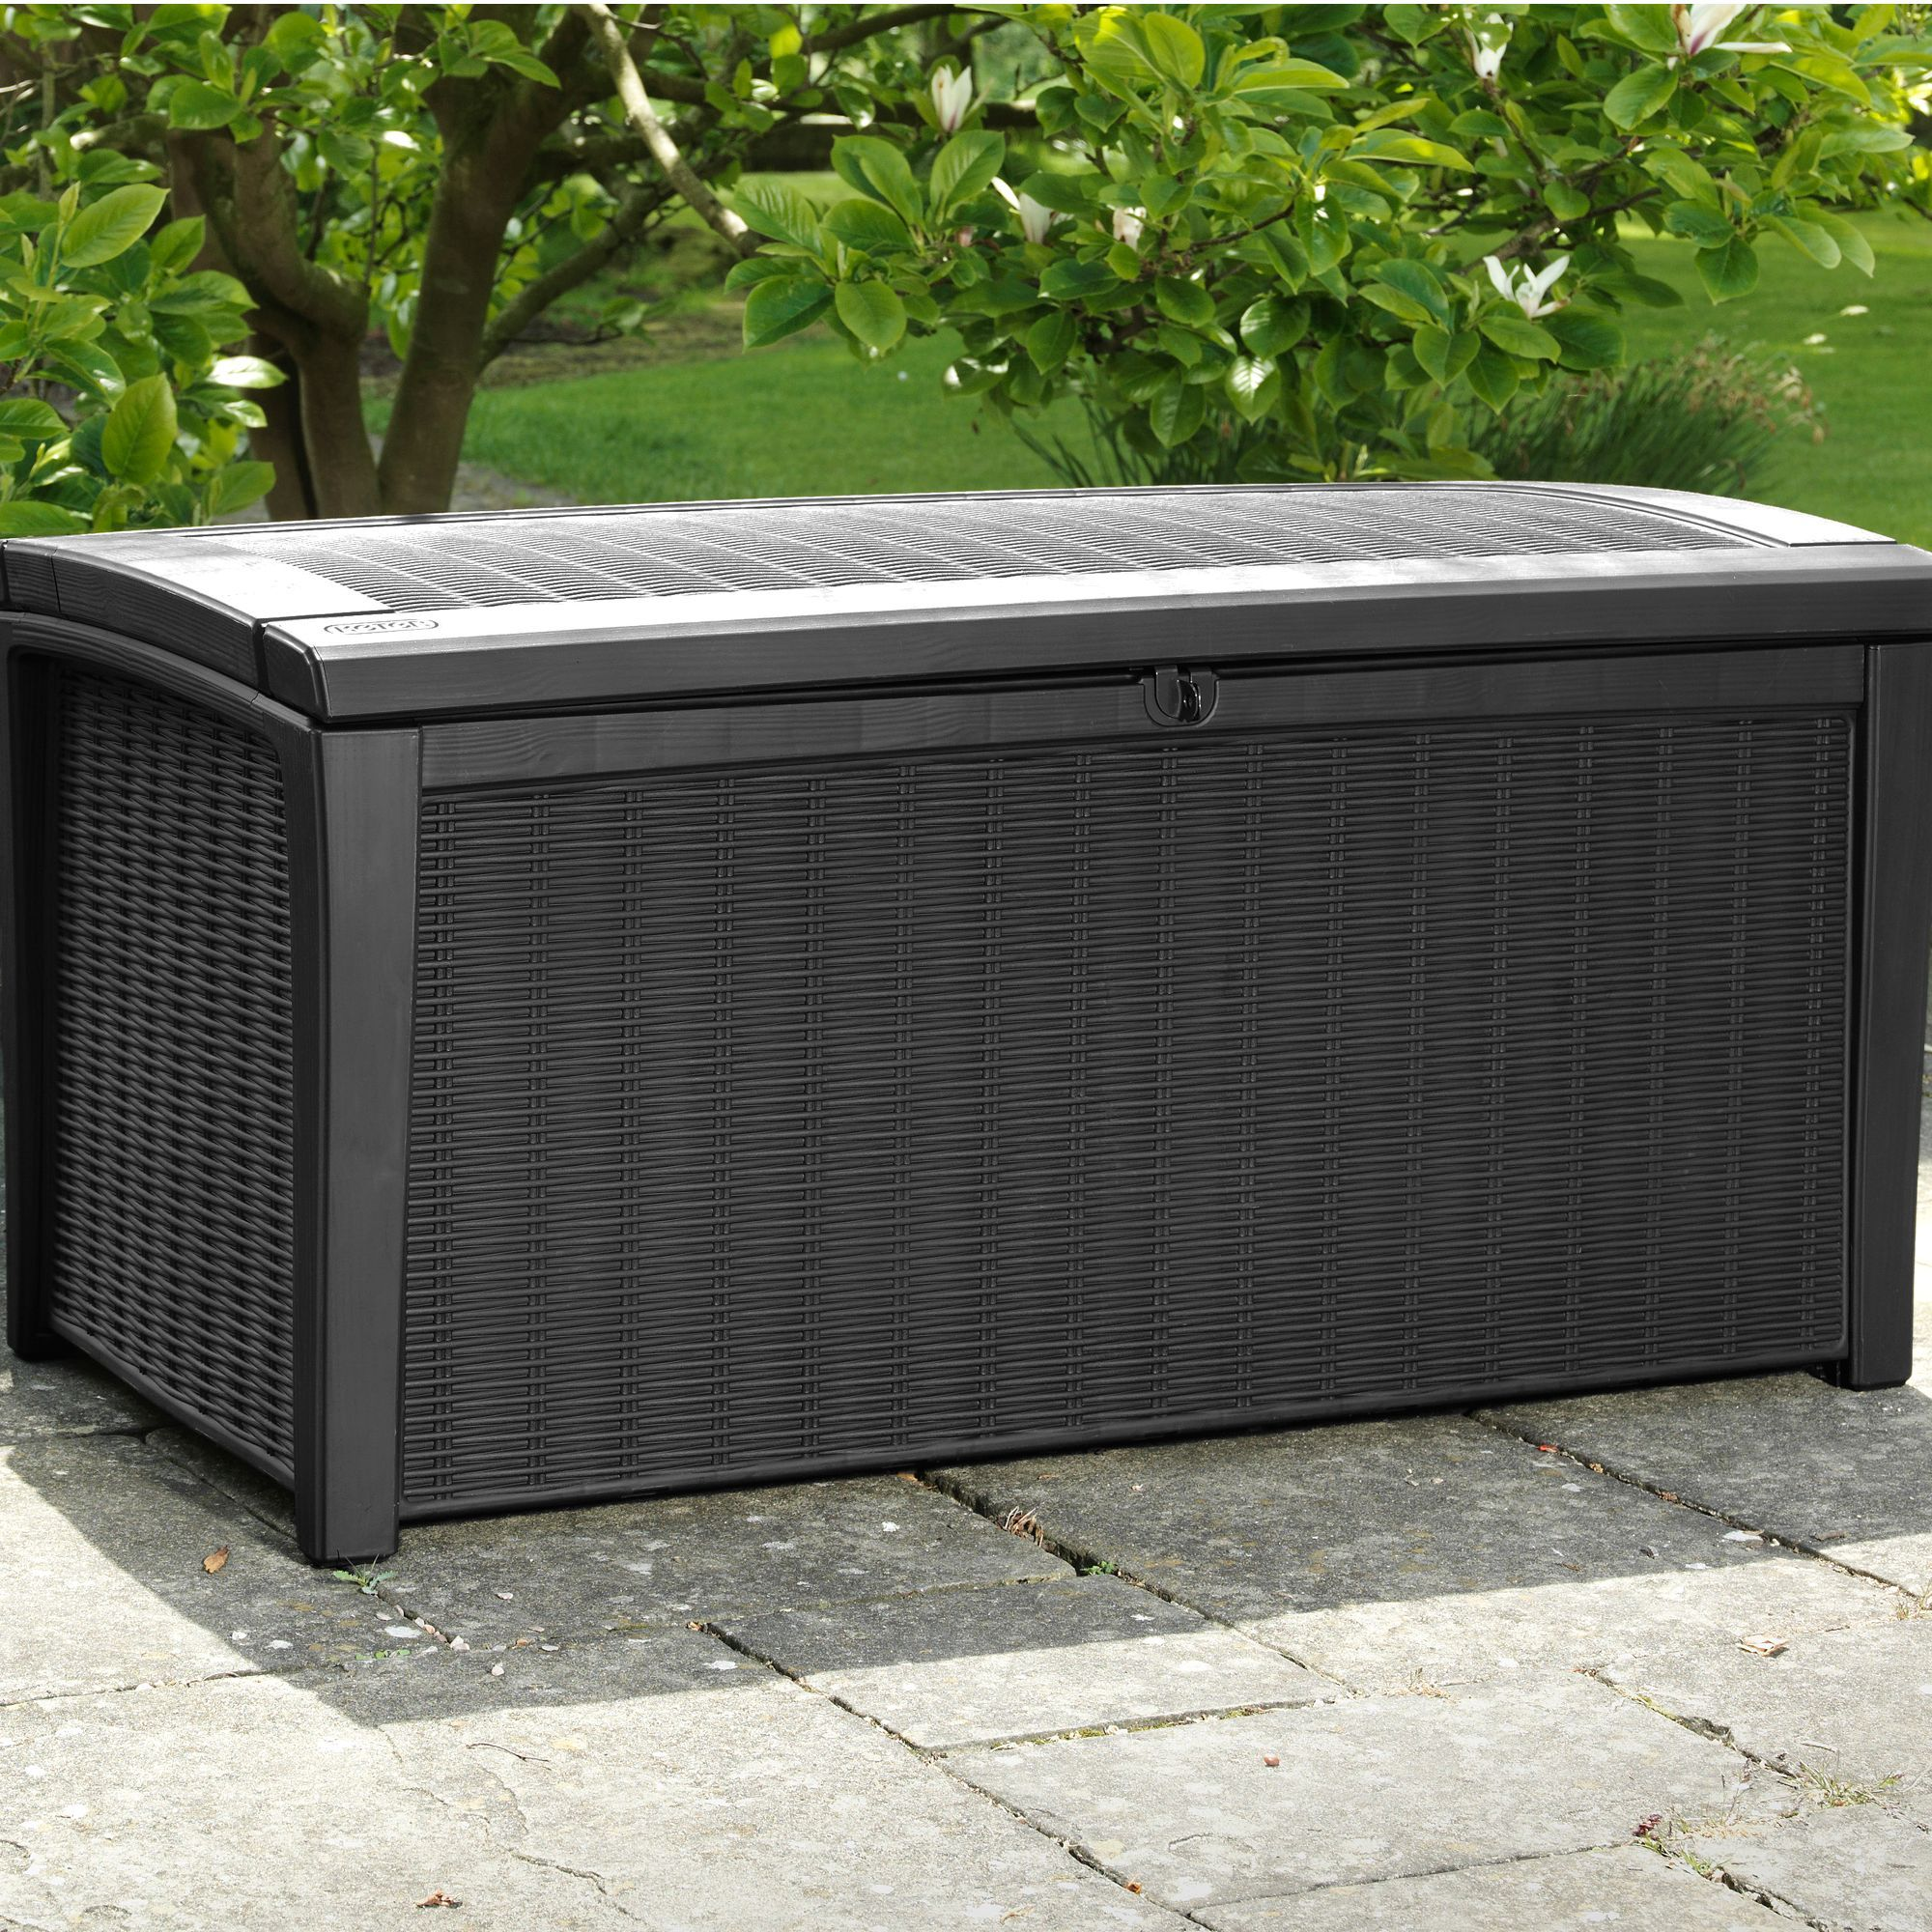 Keter Kissenbox Rockwood Borneo Rattan Effect Plastic Garden Storage Box Departments